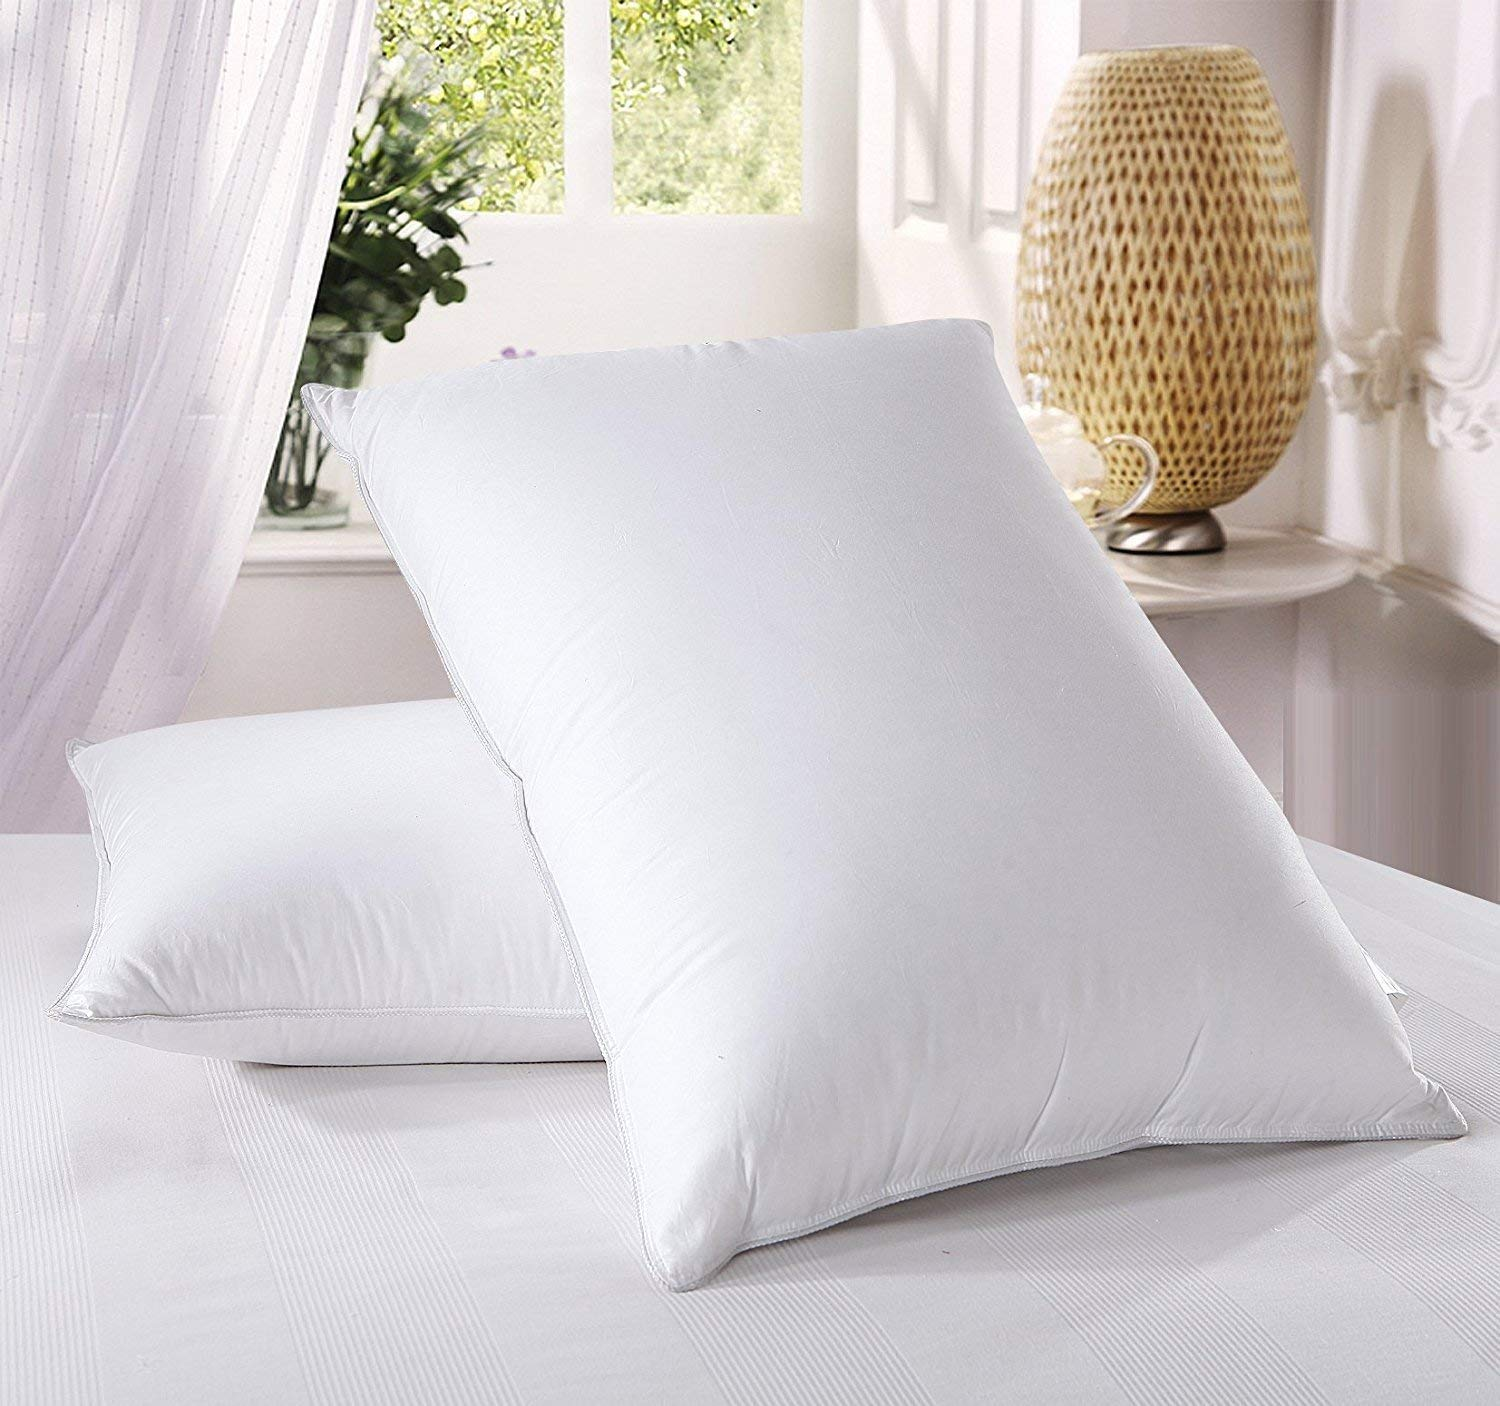 Royal Bedding best down pillows review by www.dailysleep.org